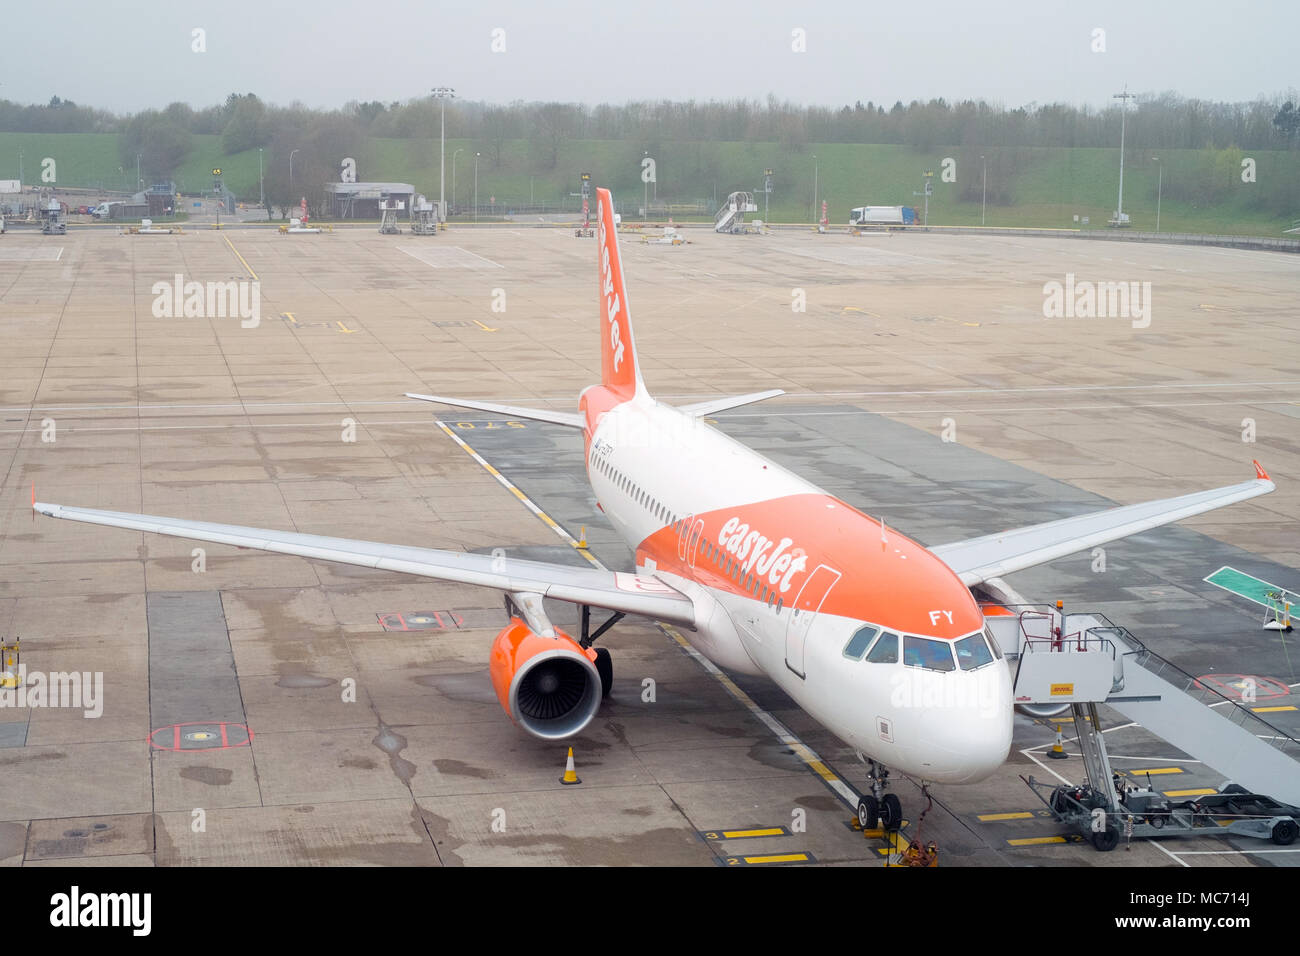 Easy jet flight between London Gatwick LGW and Vienna Austria VIE - Stock Image